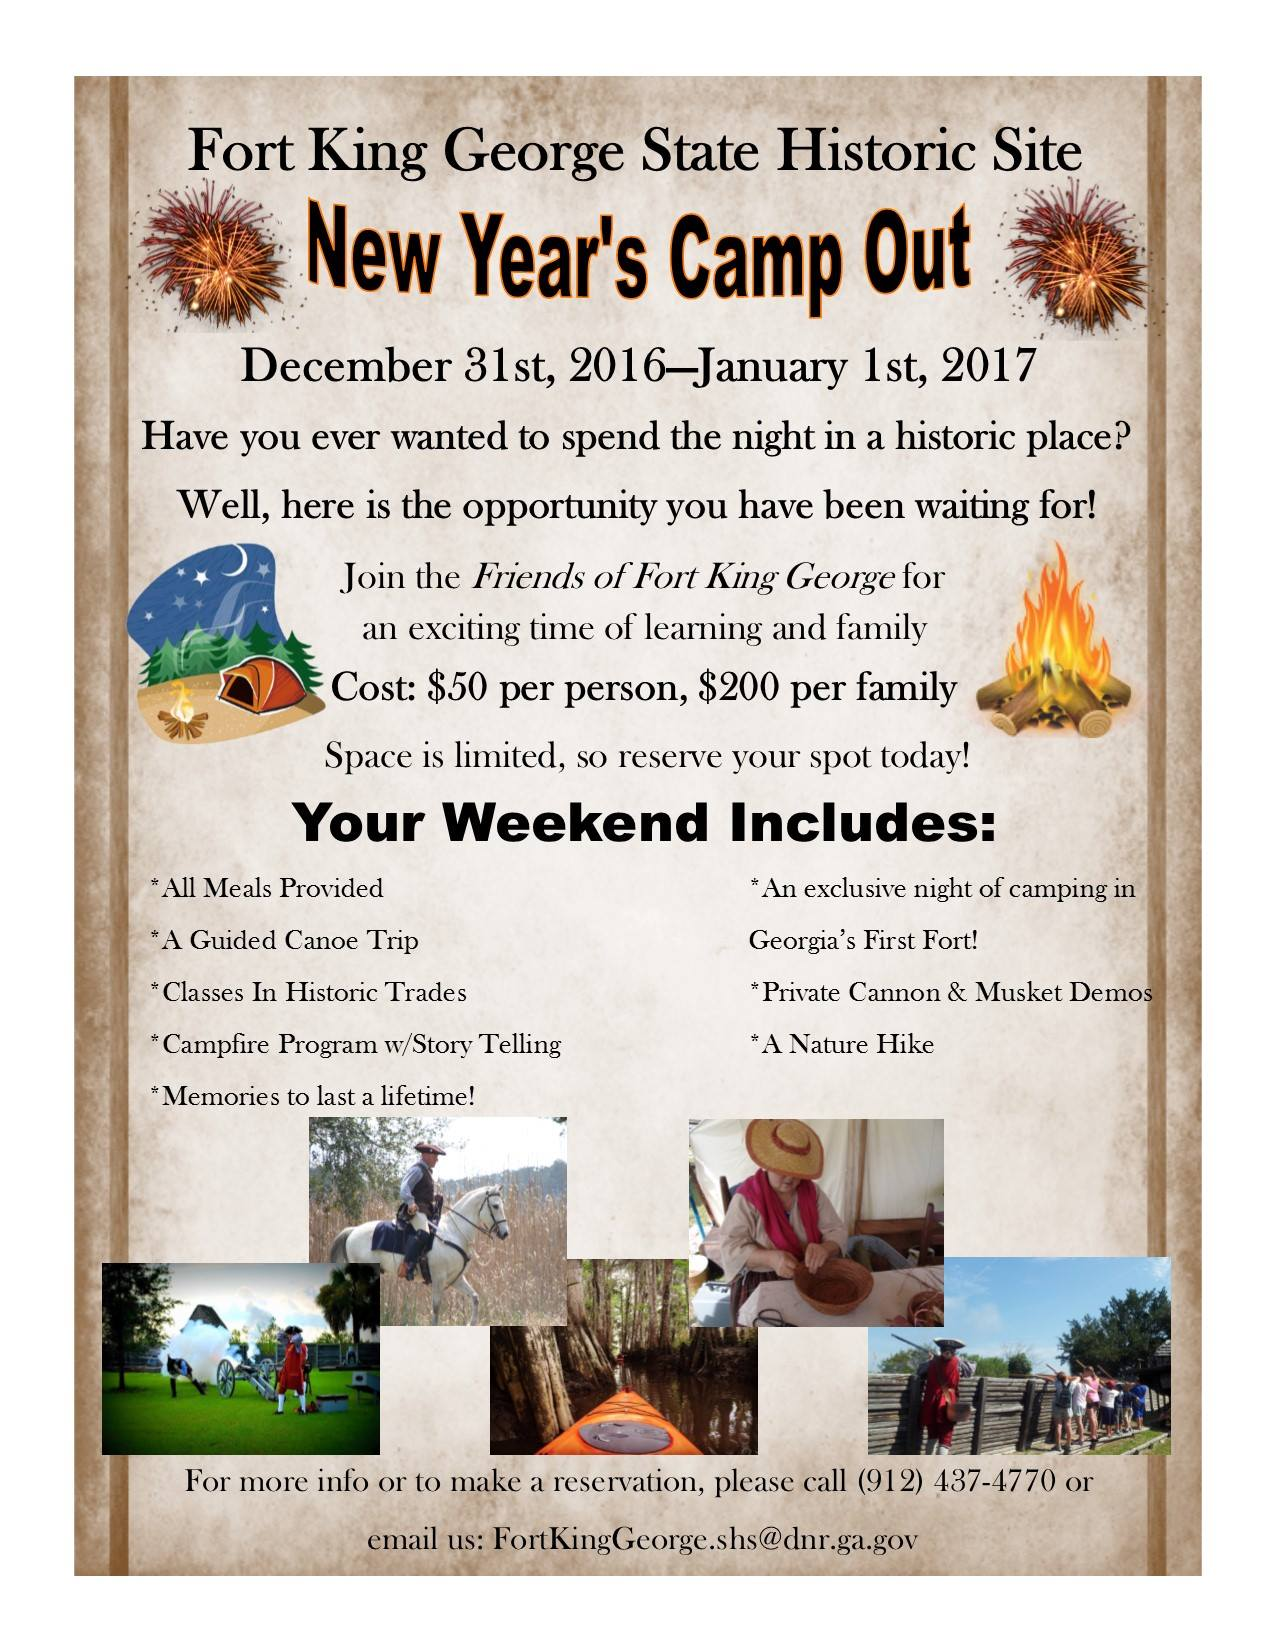 Fort King George Historic Sites New Year Camp Out